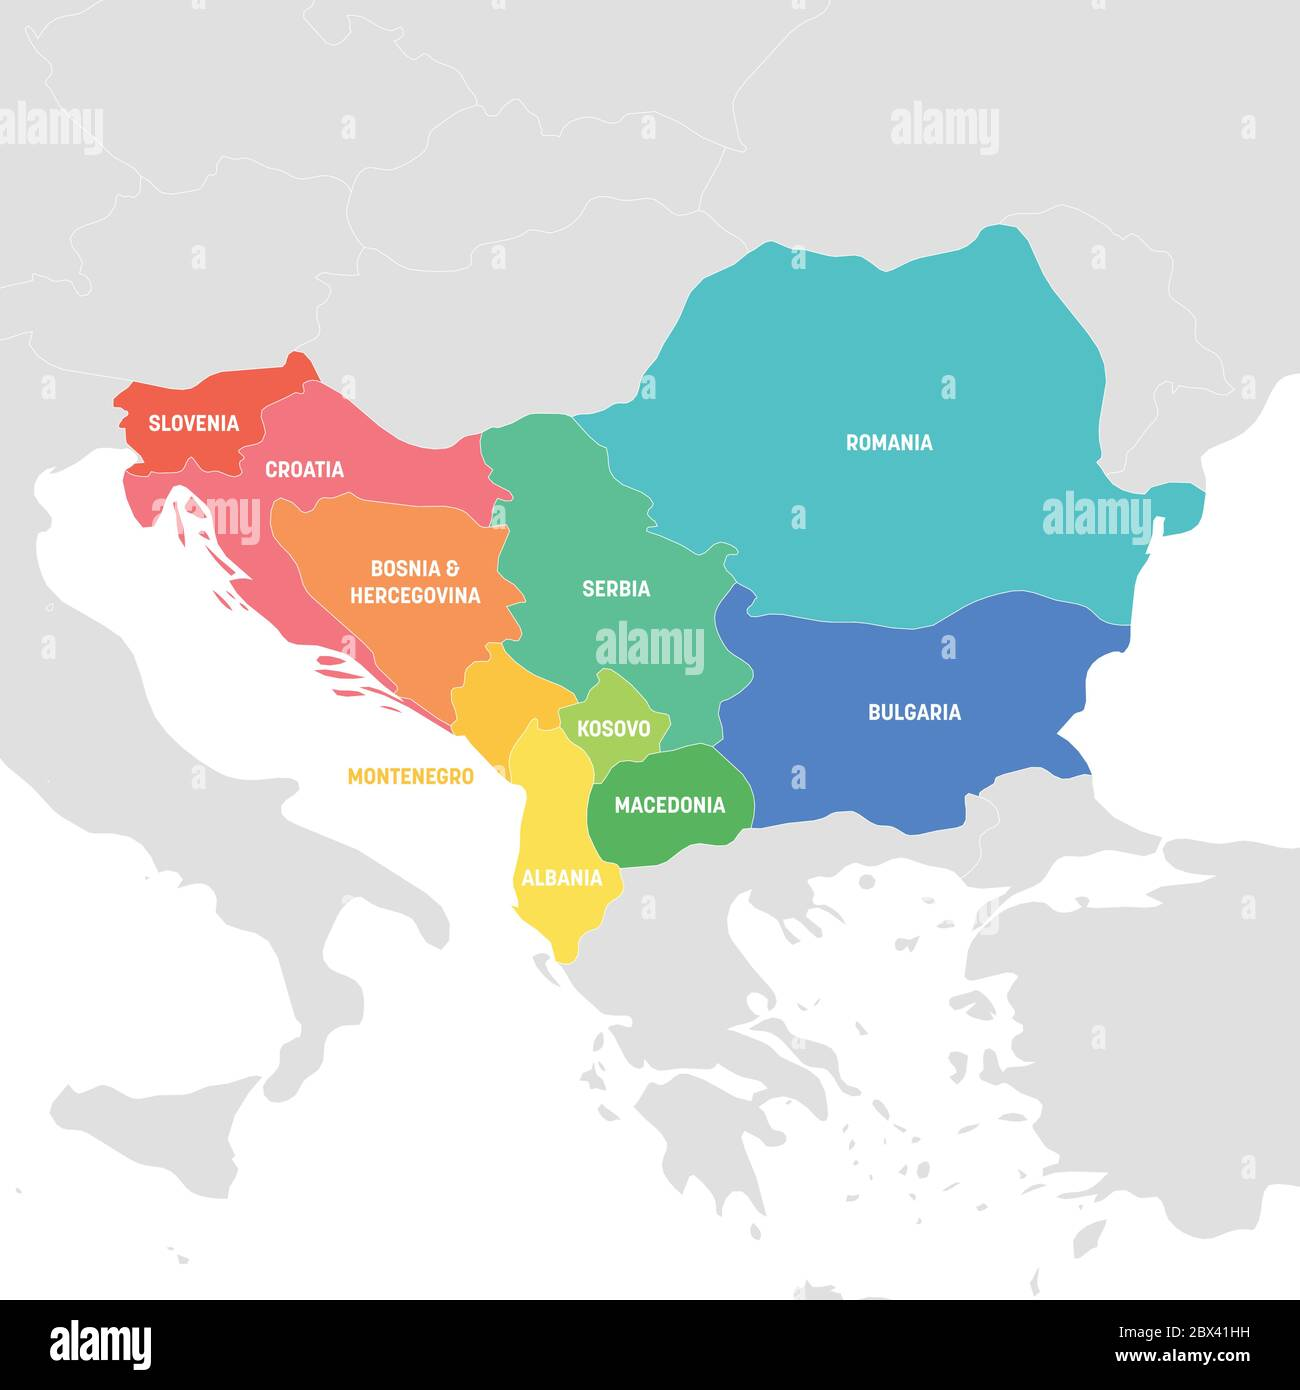 Image of: Southeast Europe Region Colorful Map Of Countries Of Balkan Peninsula Vector Illustration Stock Vector Image Art Alamy